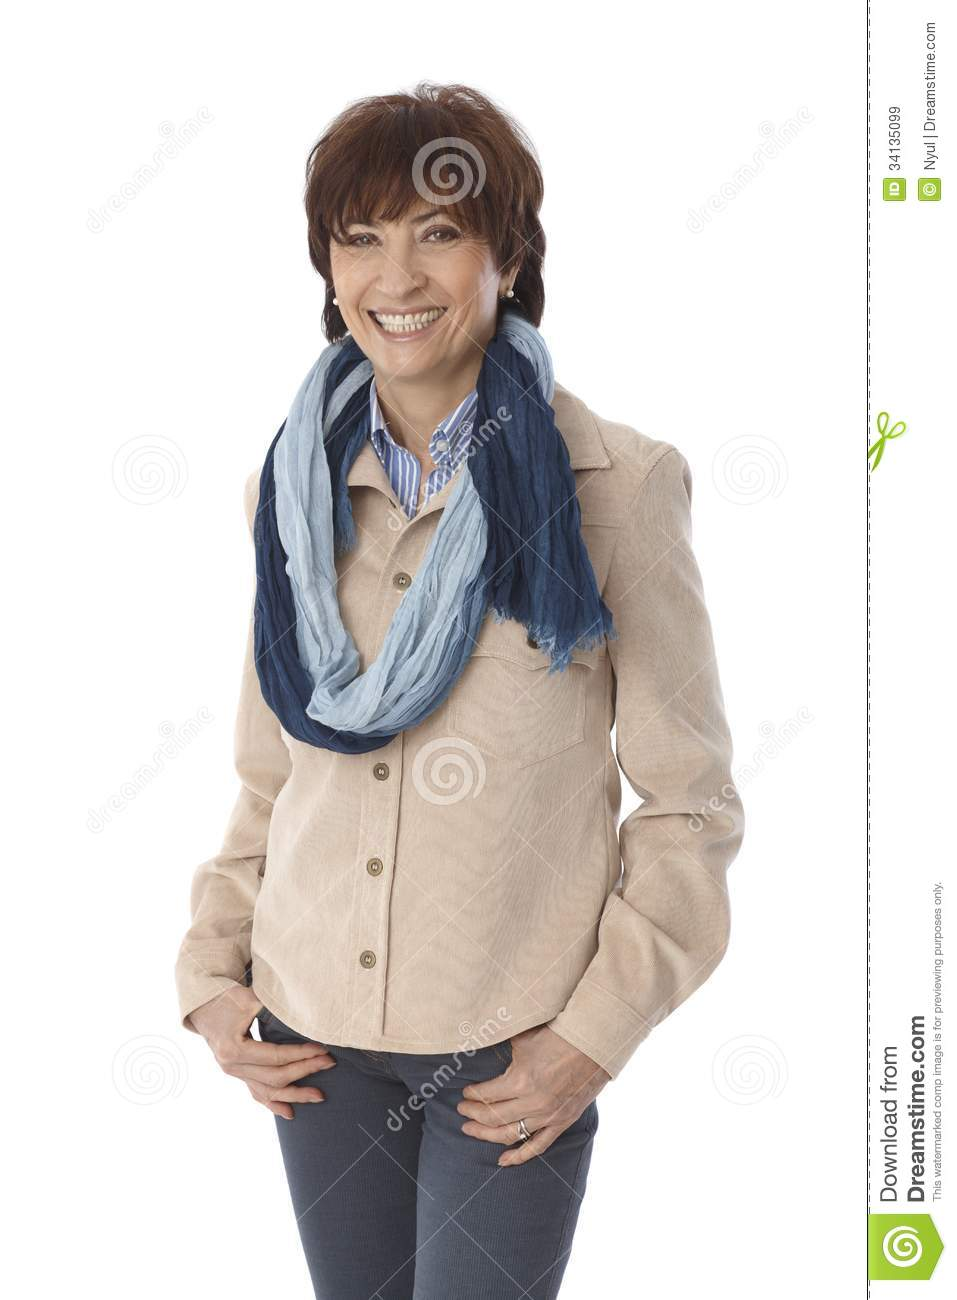 Portrait of happy mature woman in casual clothes smiling with hands in